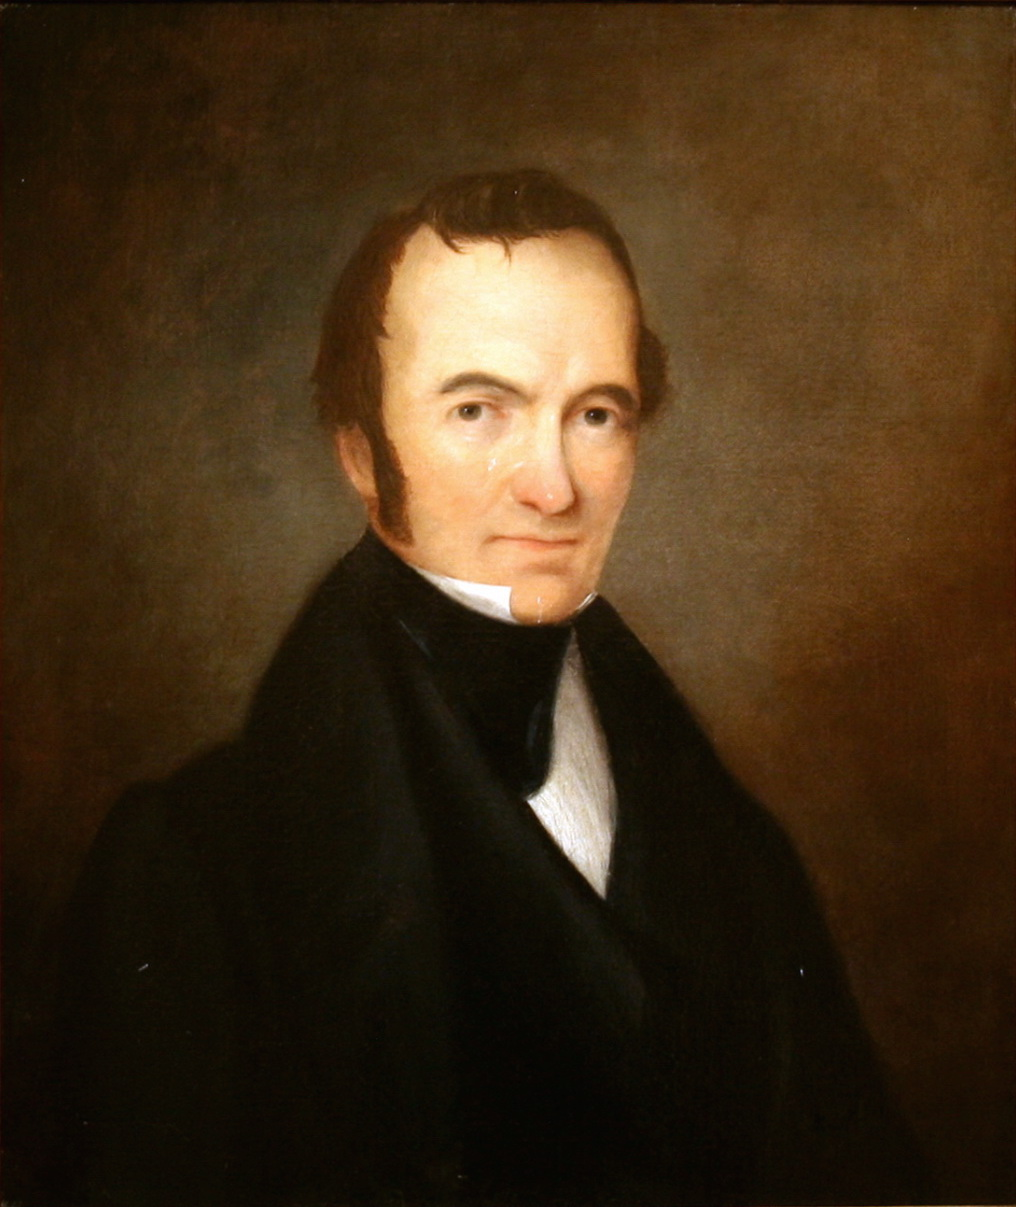 Stephen F. Austin was the first American empresario given permission to operate a colony within Mexican Texas. - Texas